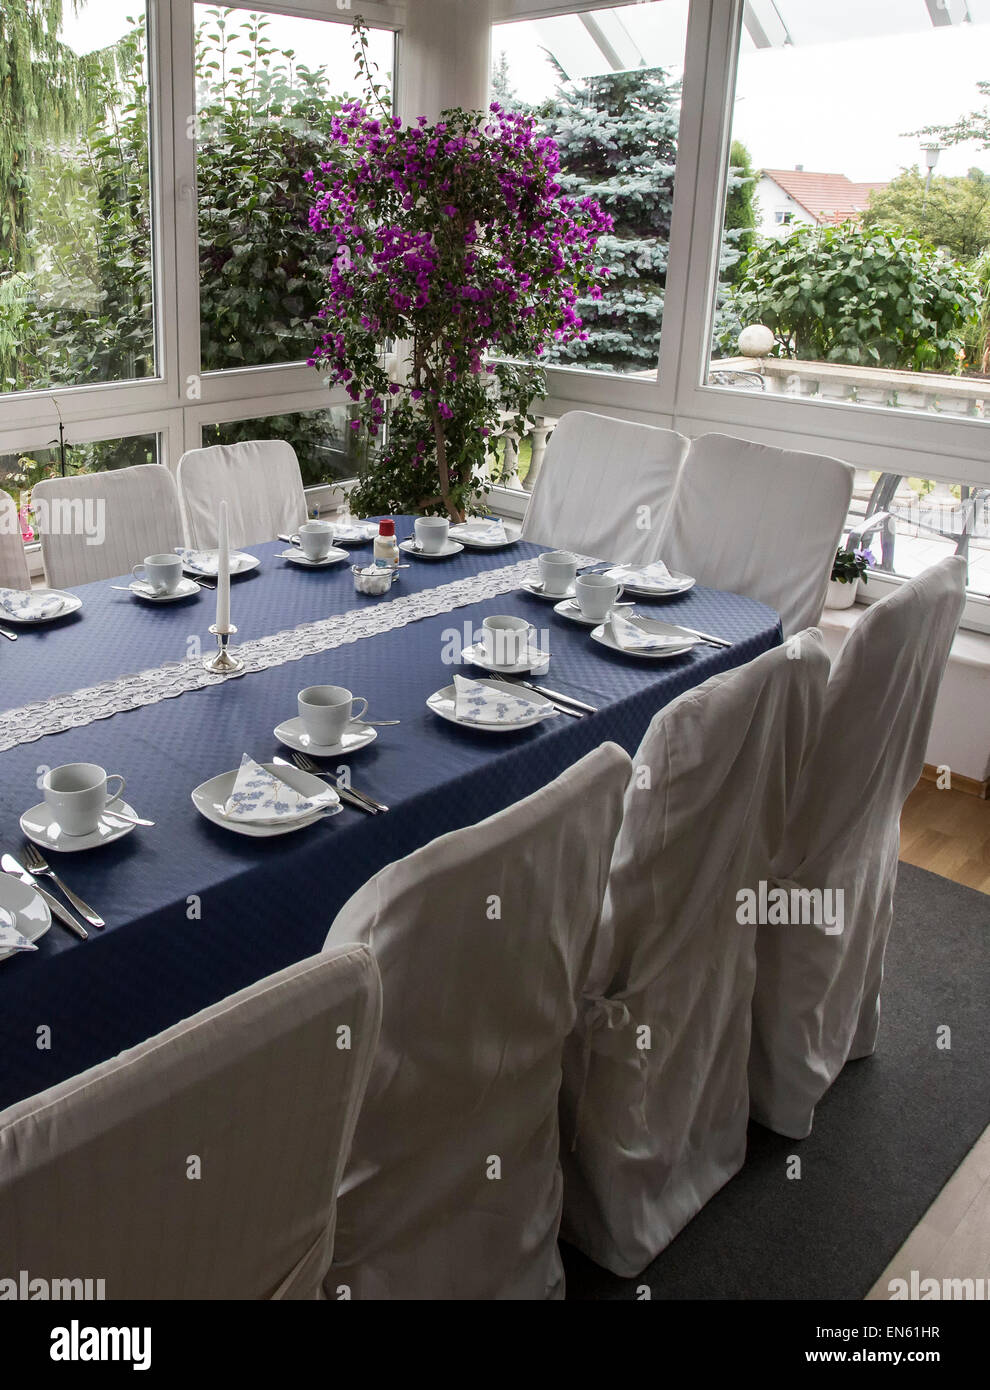 Beautiful family luncheon table in garden room in Germany - Stock Image